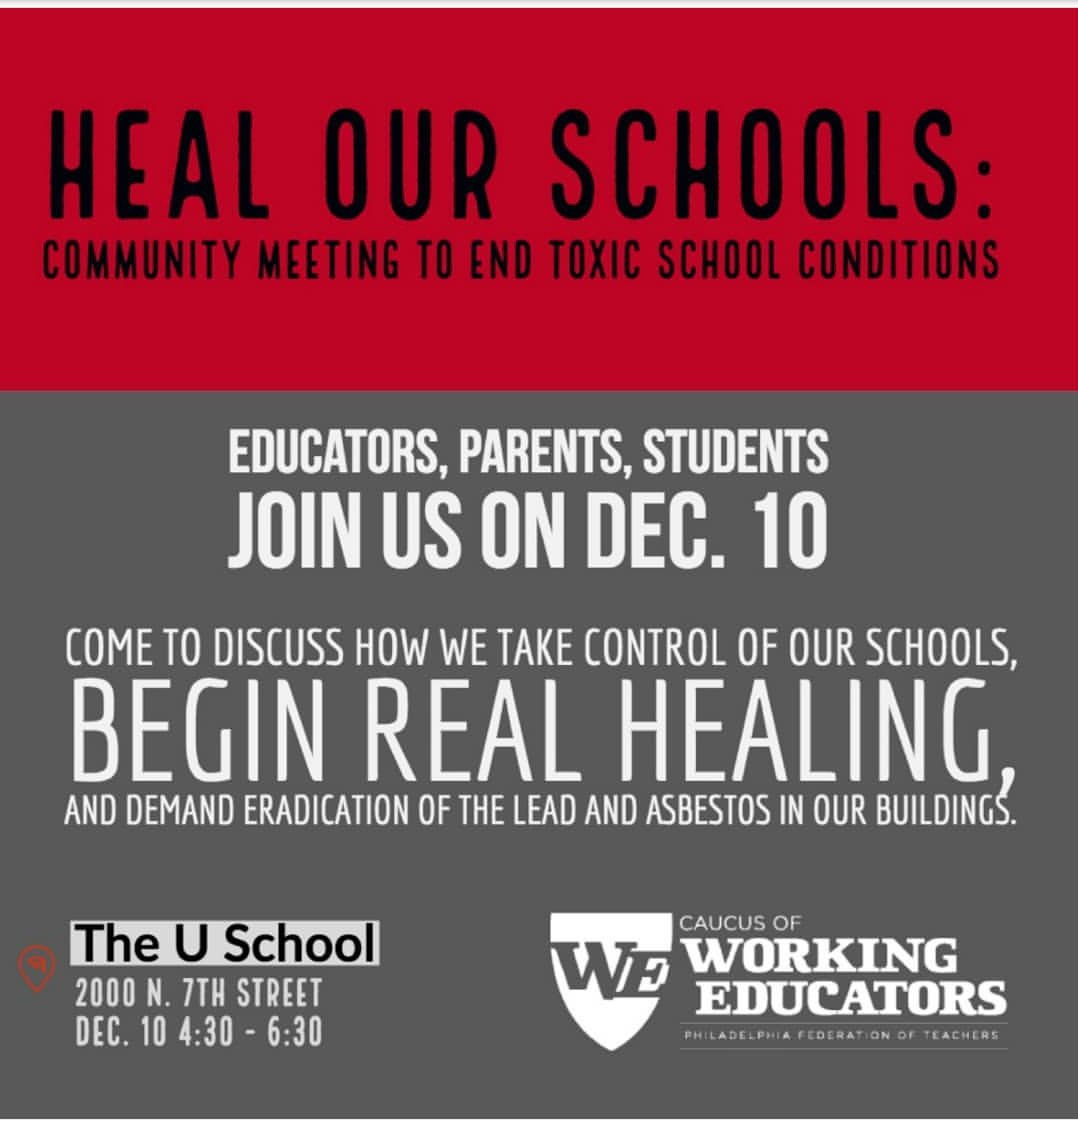 Please join us Monday 12/10 for the #HealOurSchools Community Meeting to end toxic conditions in our schools. Student, School,  & Community Speakers and discussion of a way forward. #PhlEd